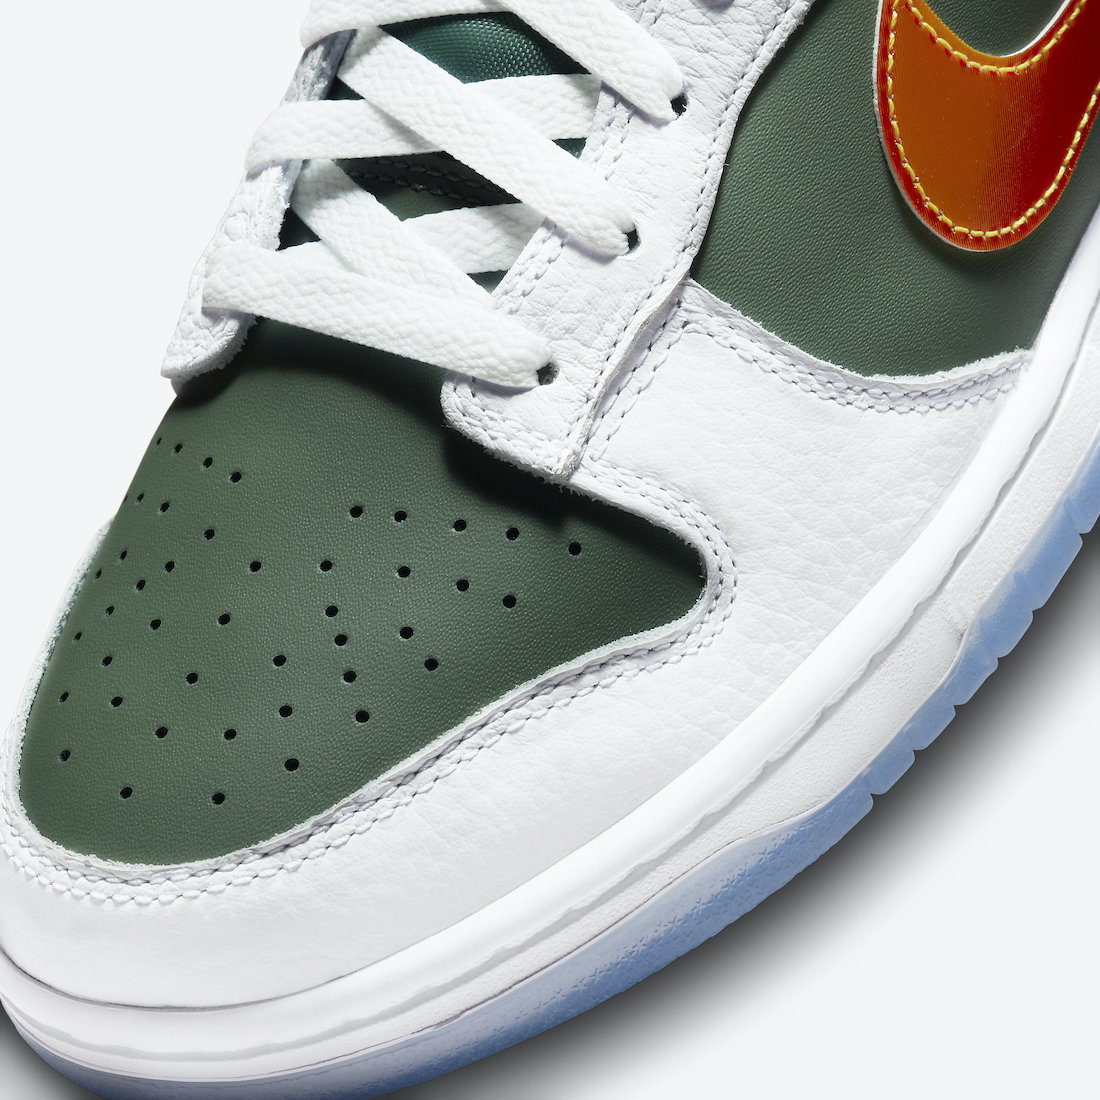 Nike-Dunk-Low-NY-vs-NY-DN2489-300-Release-Date-Price-6